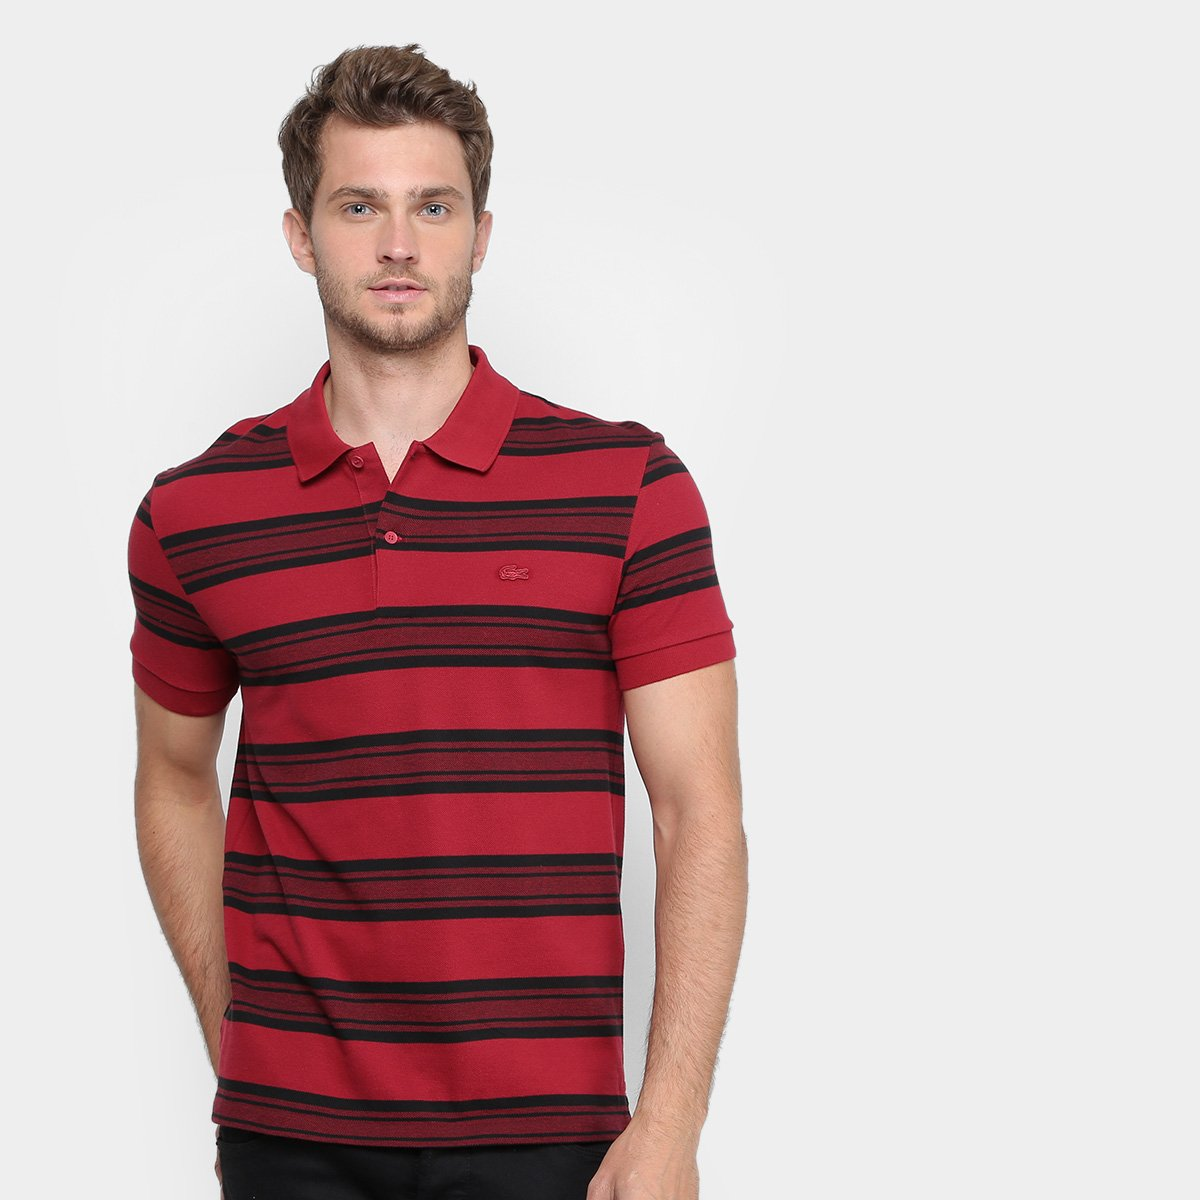 Camisa Polo Lacoste Piquet Regular Fit Listras Masculina  9f01f0f7c3fa1